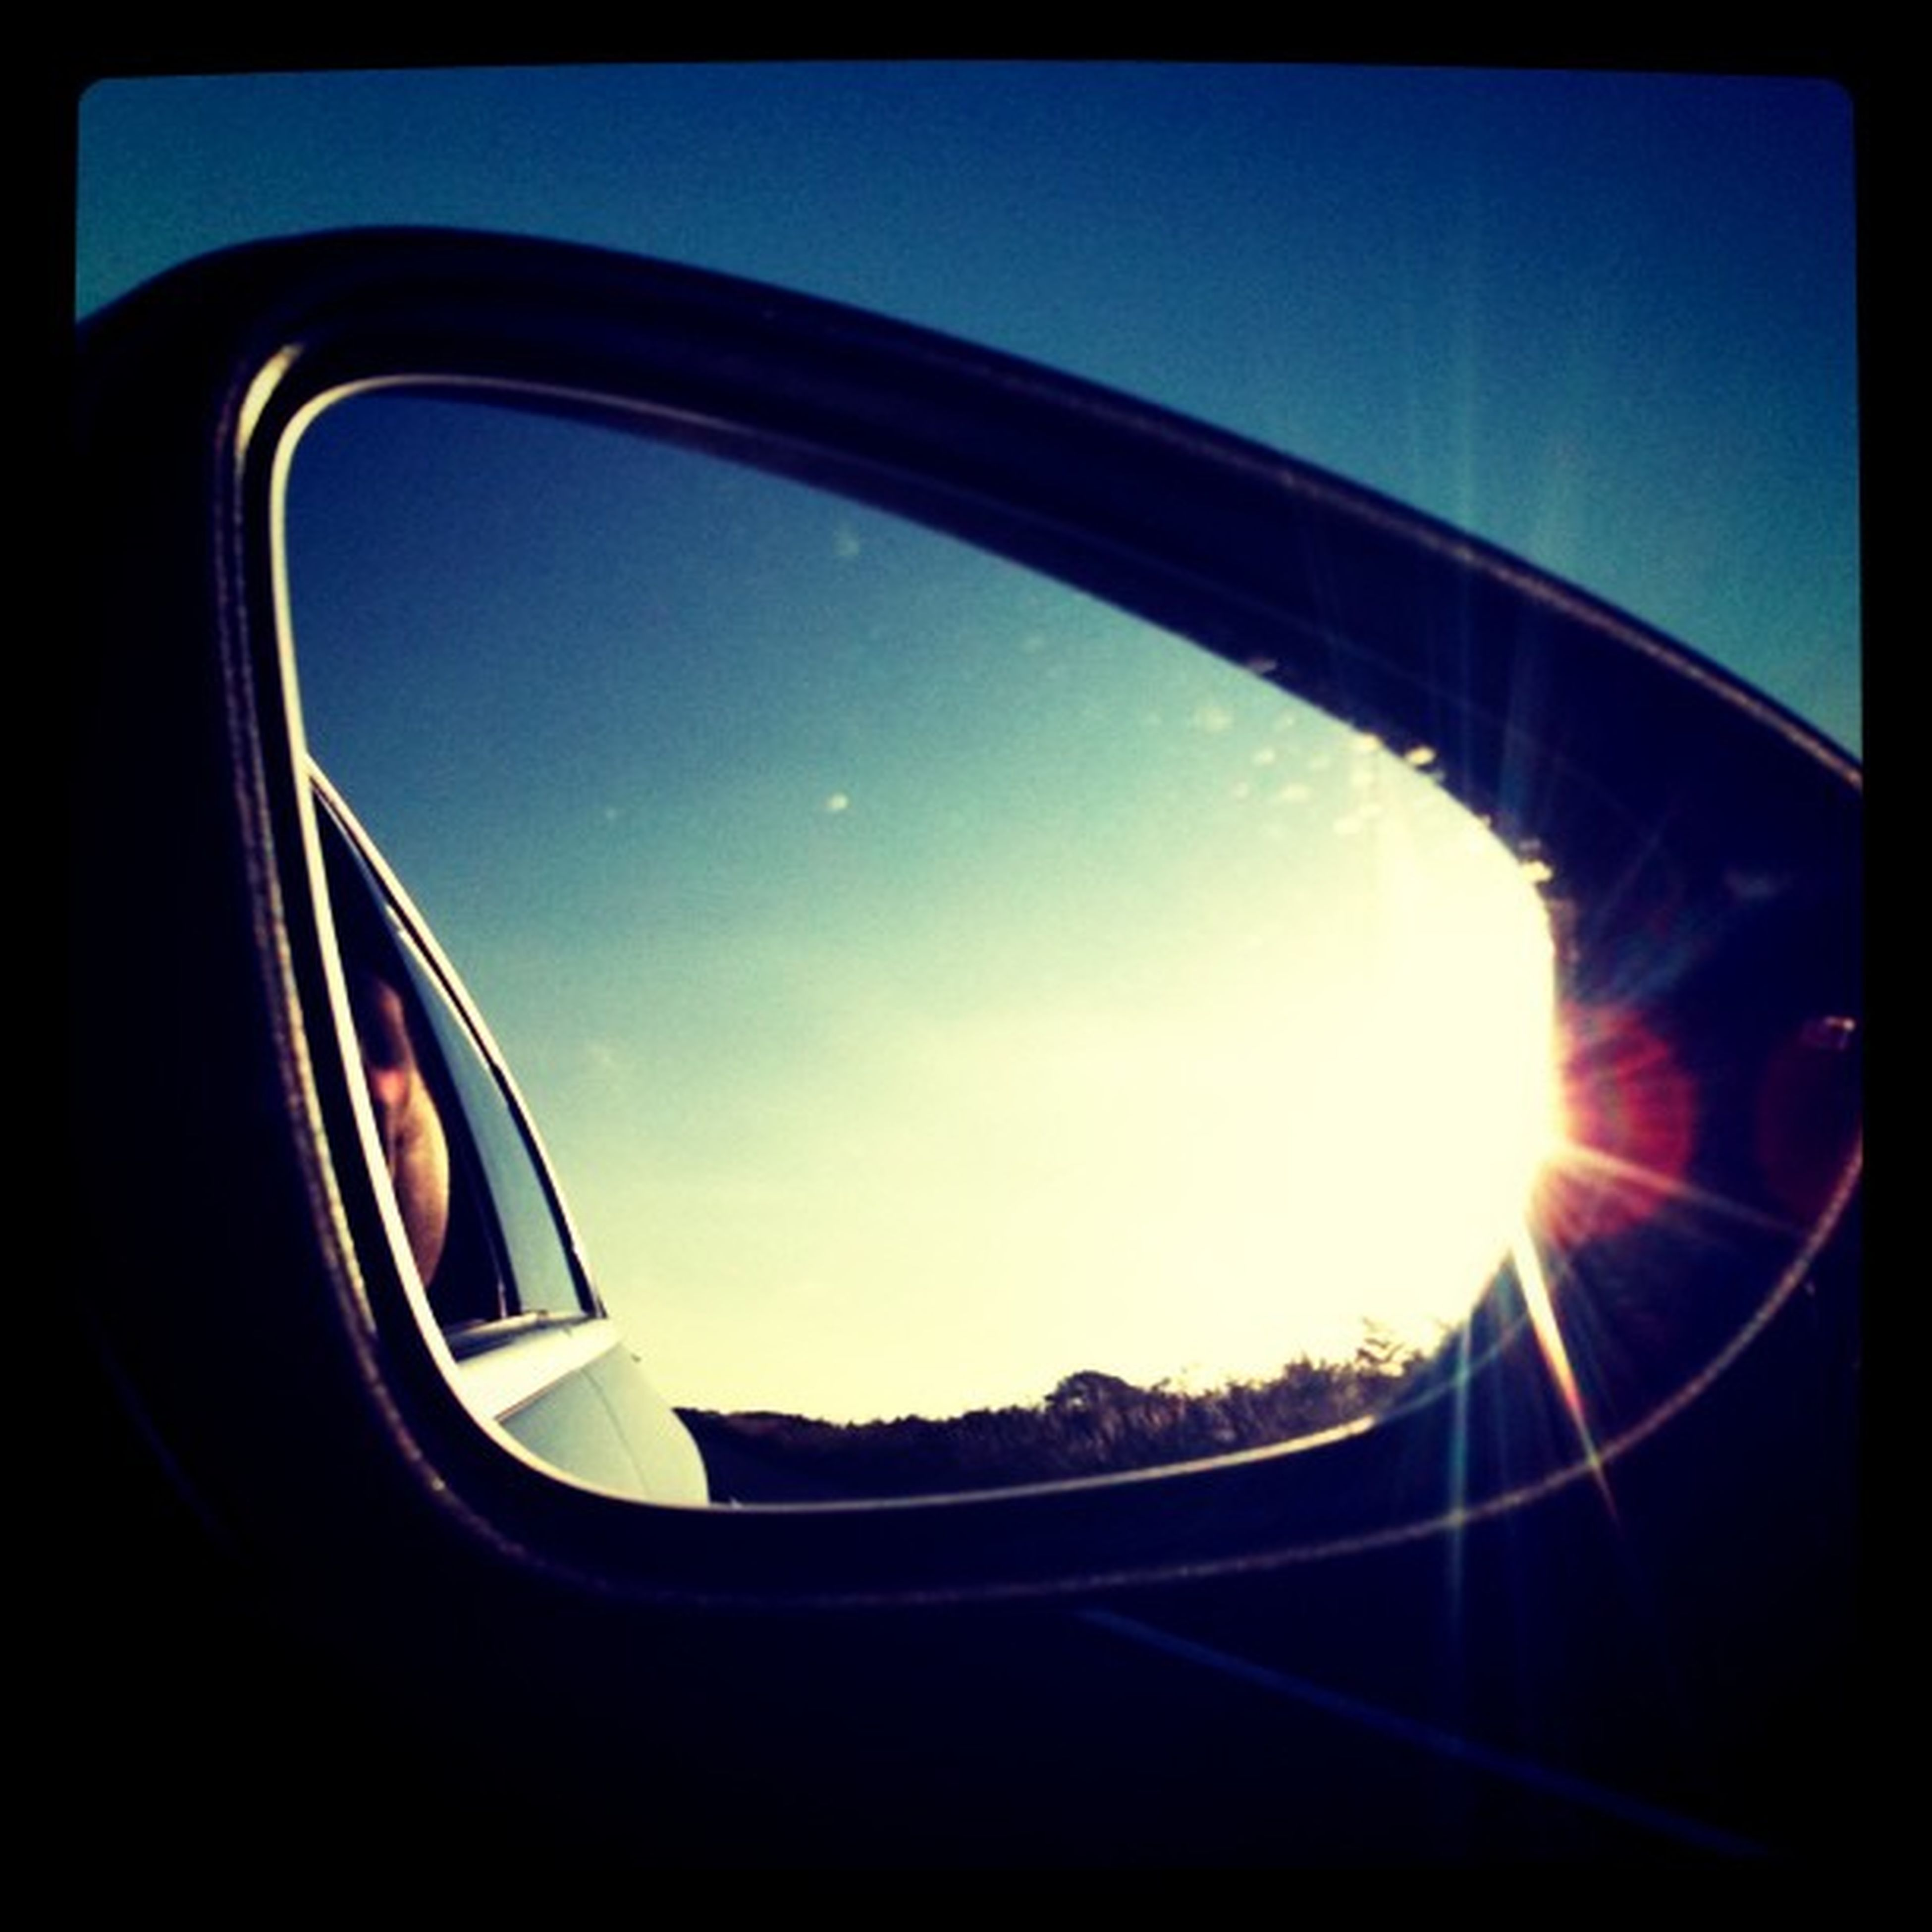 transportation, mode of transport, part of, vehicle interior, cropped, glass - material, car, airplane, sky, window, reflection, air vehicle, sun, transparent, close-up, travel, no people, blue, sunlight, side-view mirror